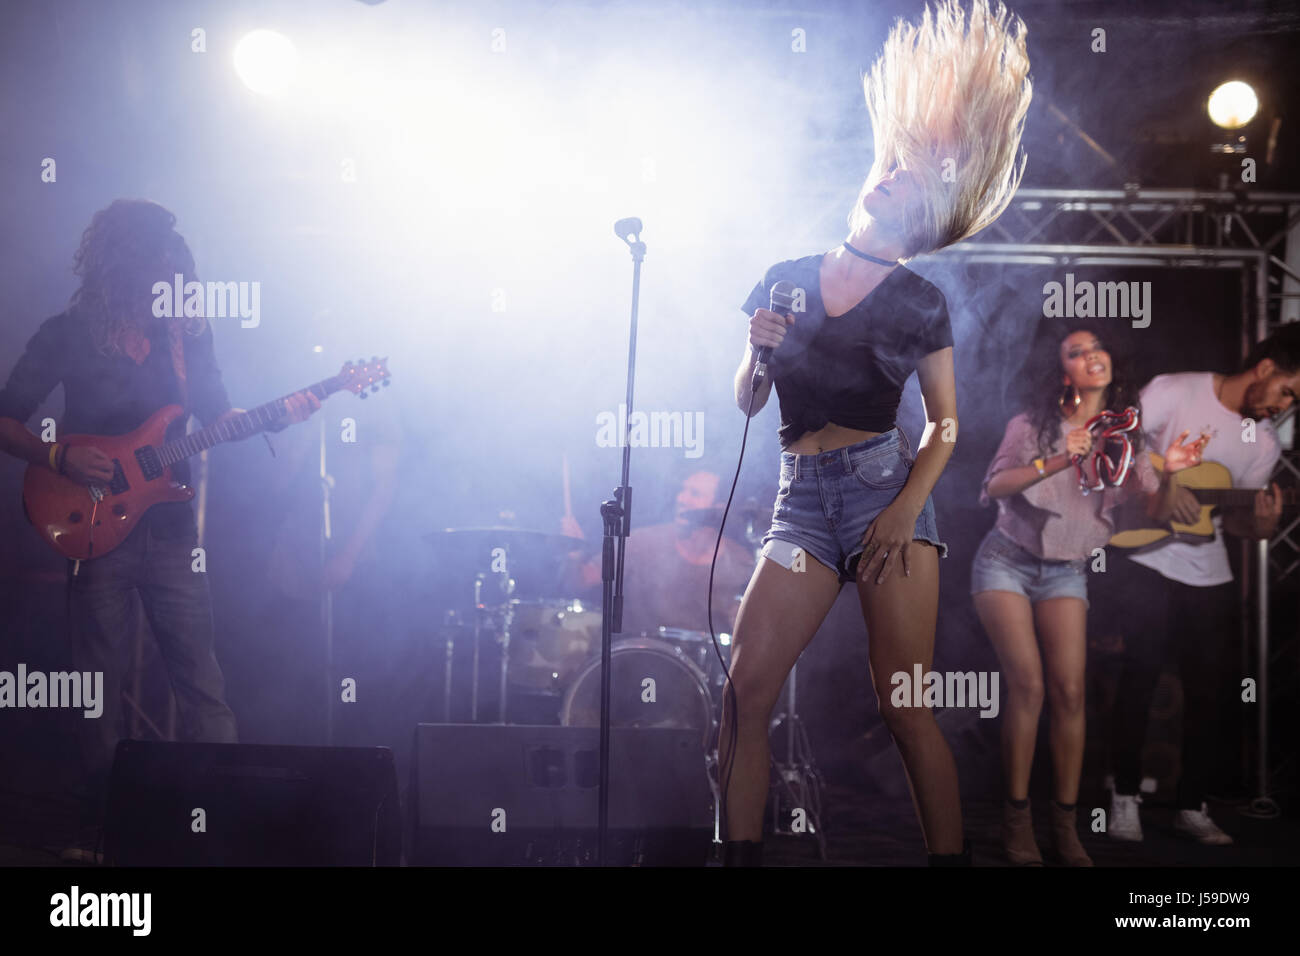 Young singer with tousled long hair performing on stage at nightclub - Stock Image